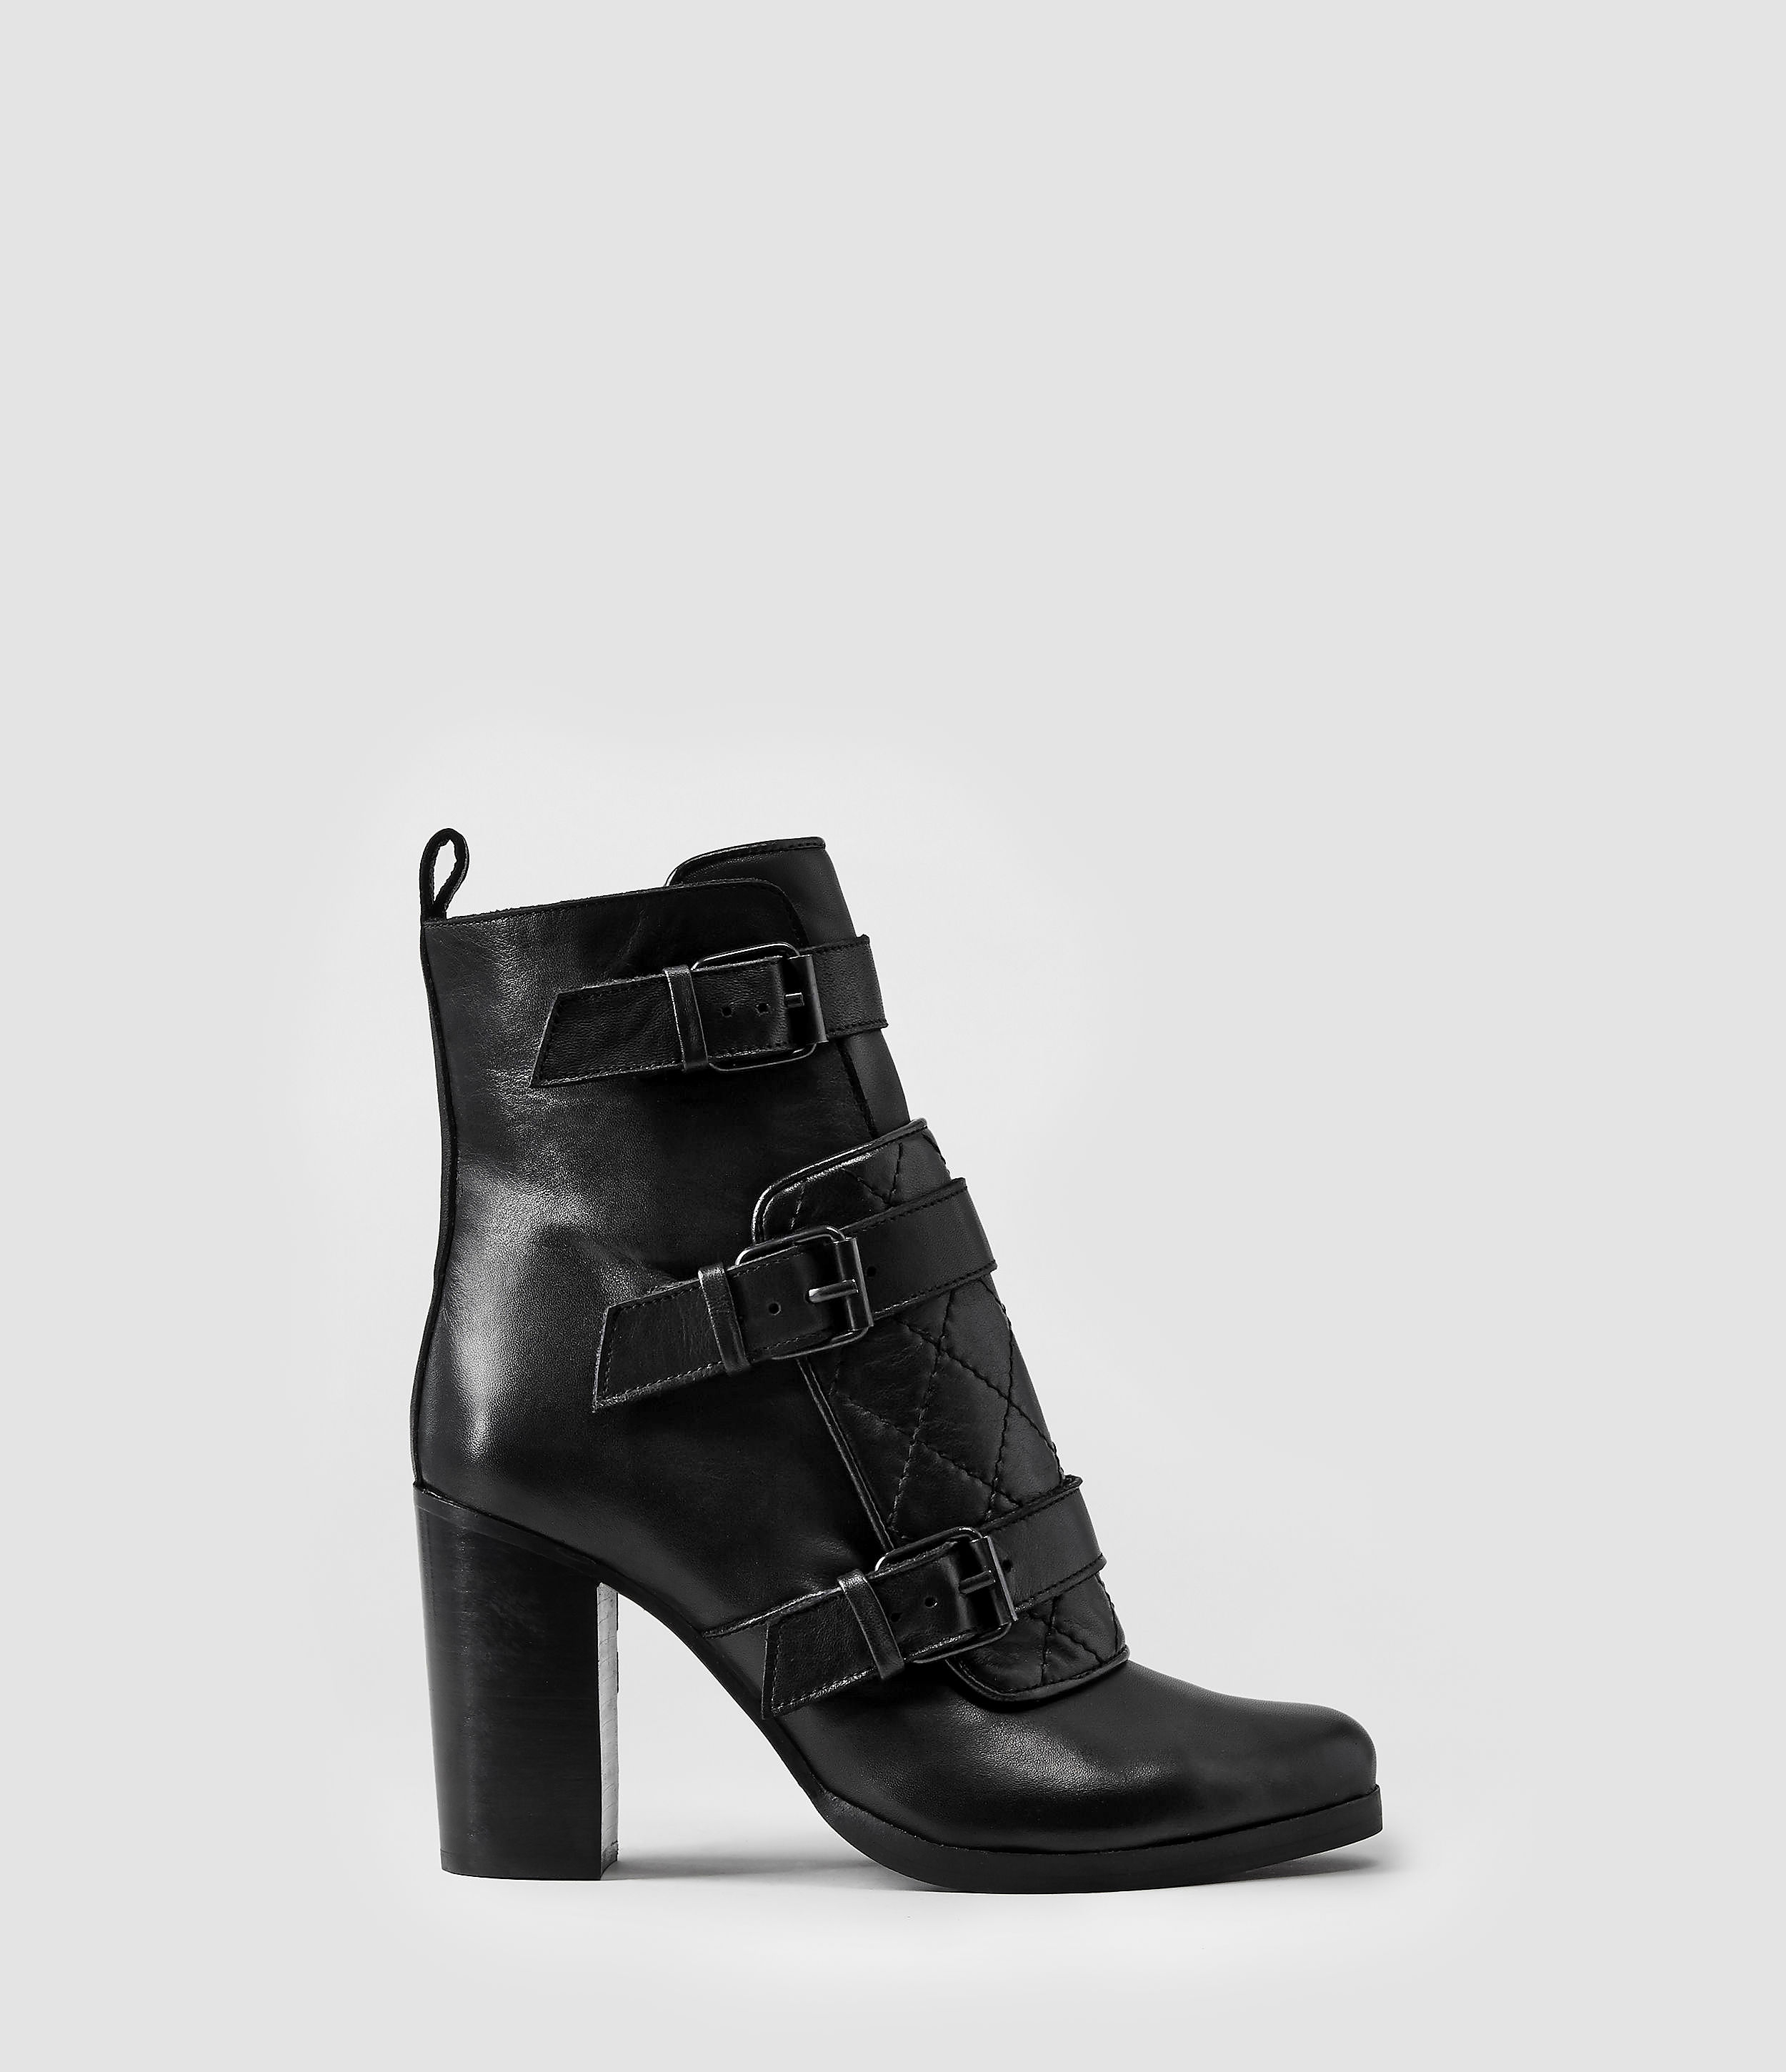 AllSaints Monalisa Boot Buy Cheap Genuine Clearance Best Prices Cheap Sale Exclusive For Sale Official Site yditrh3